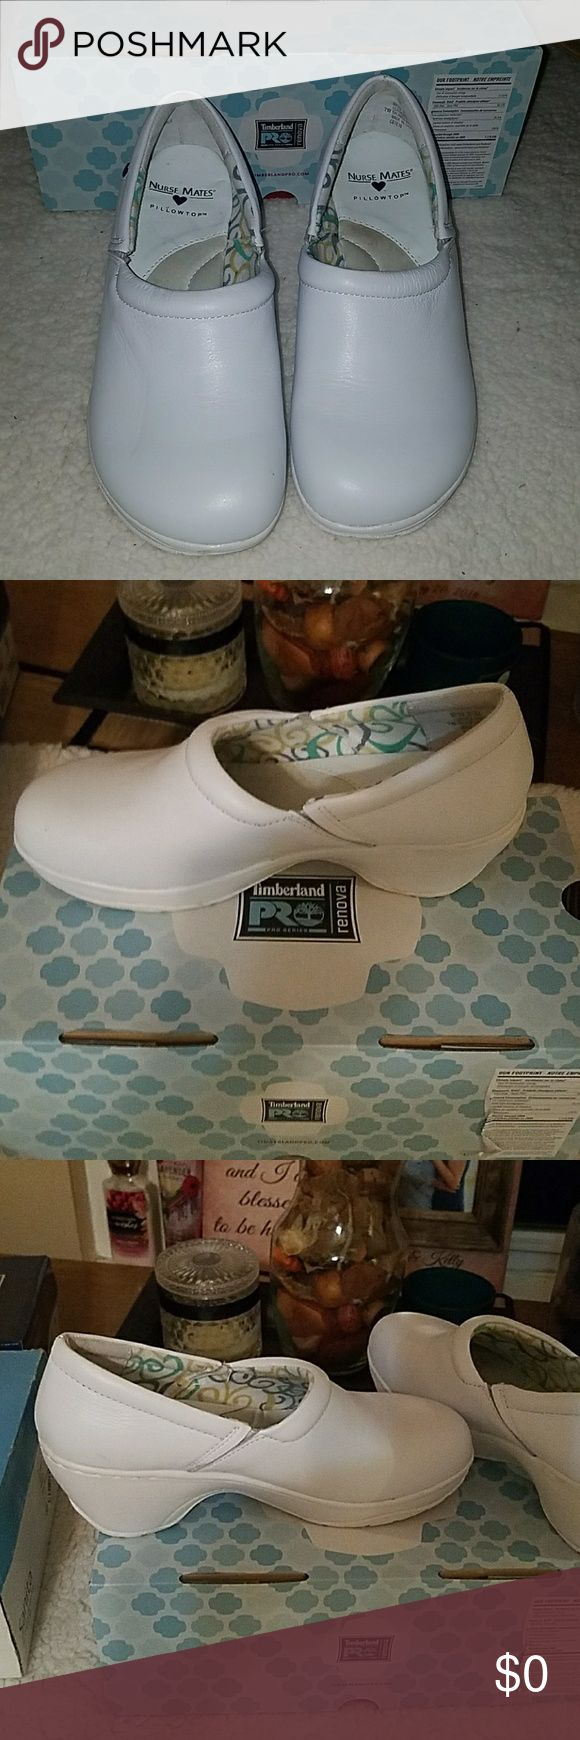 "Nurse Mate Pillow Top Shoes. Size 7 W Nurse Mate pillow top nursing shoes, with padded collar and side goring. Stain resistant leather. Tapered wedge heel. Slip resistant, 2 1/4"" heel with 1/2"" platform.  Size 7 W Nurse Mates Shoes"